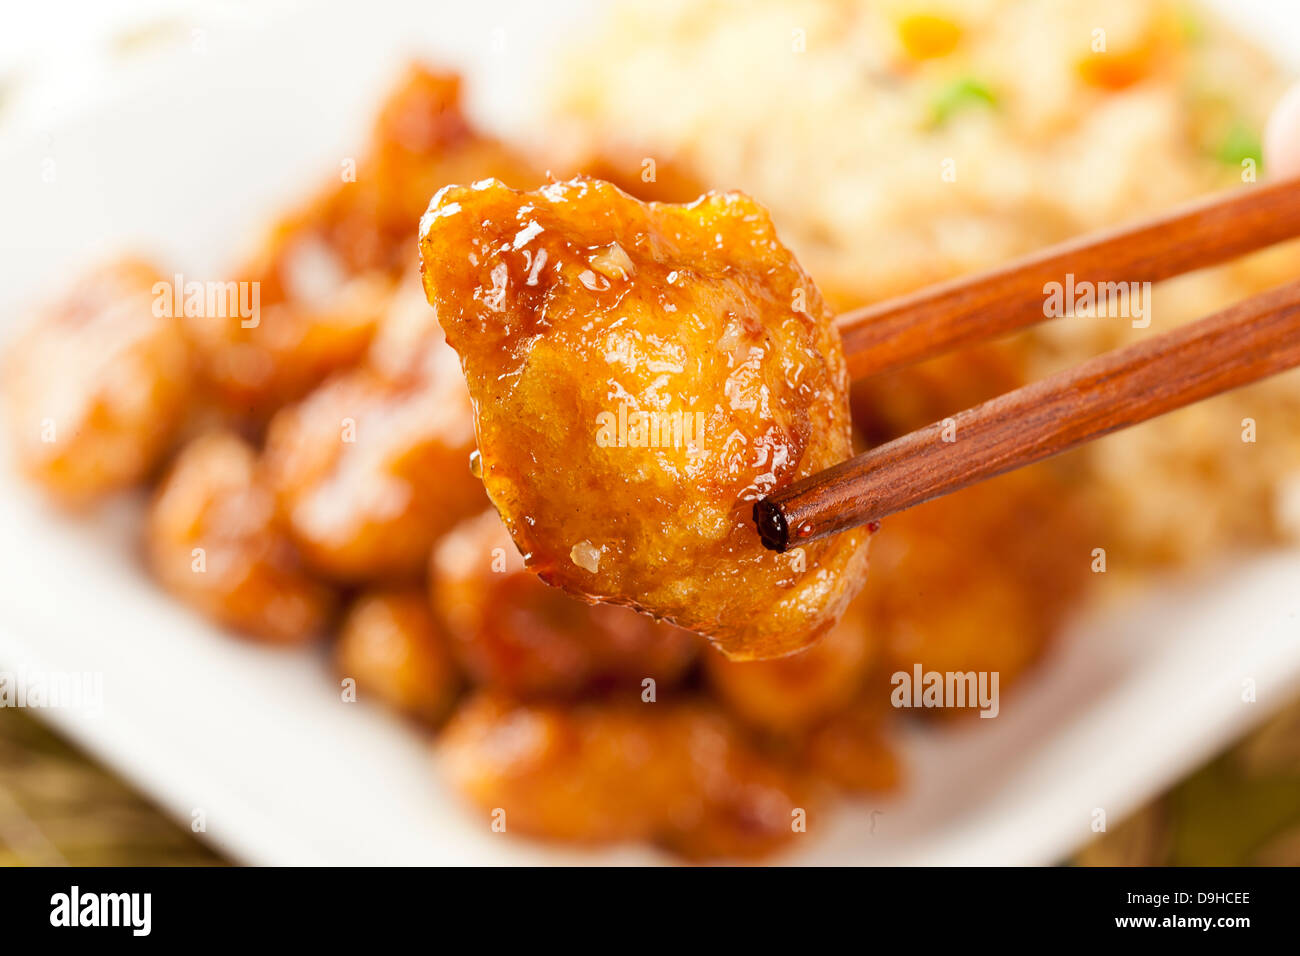 Homemade Orange Chicken with Rice on a background - Stock Image